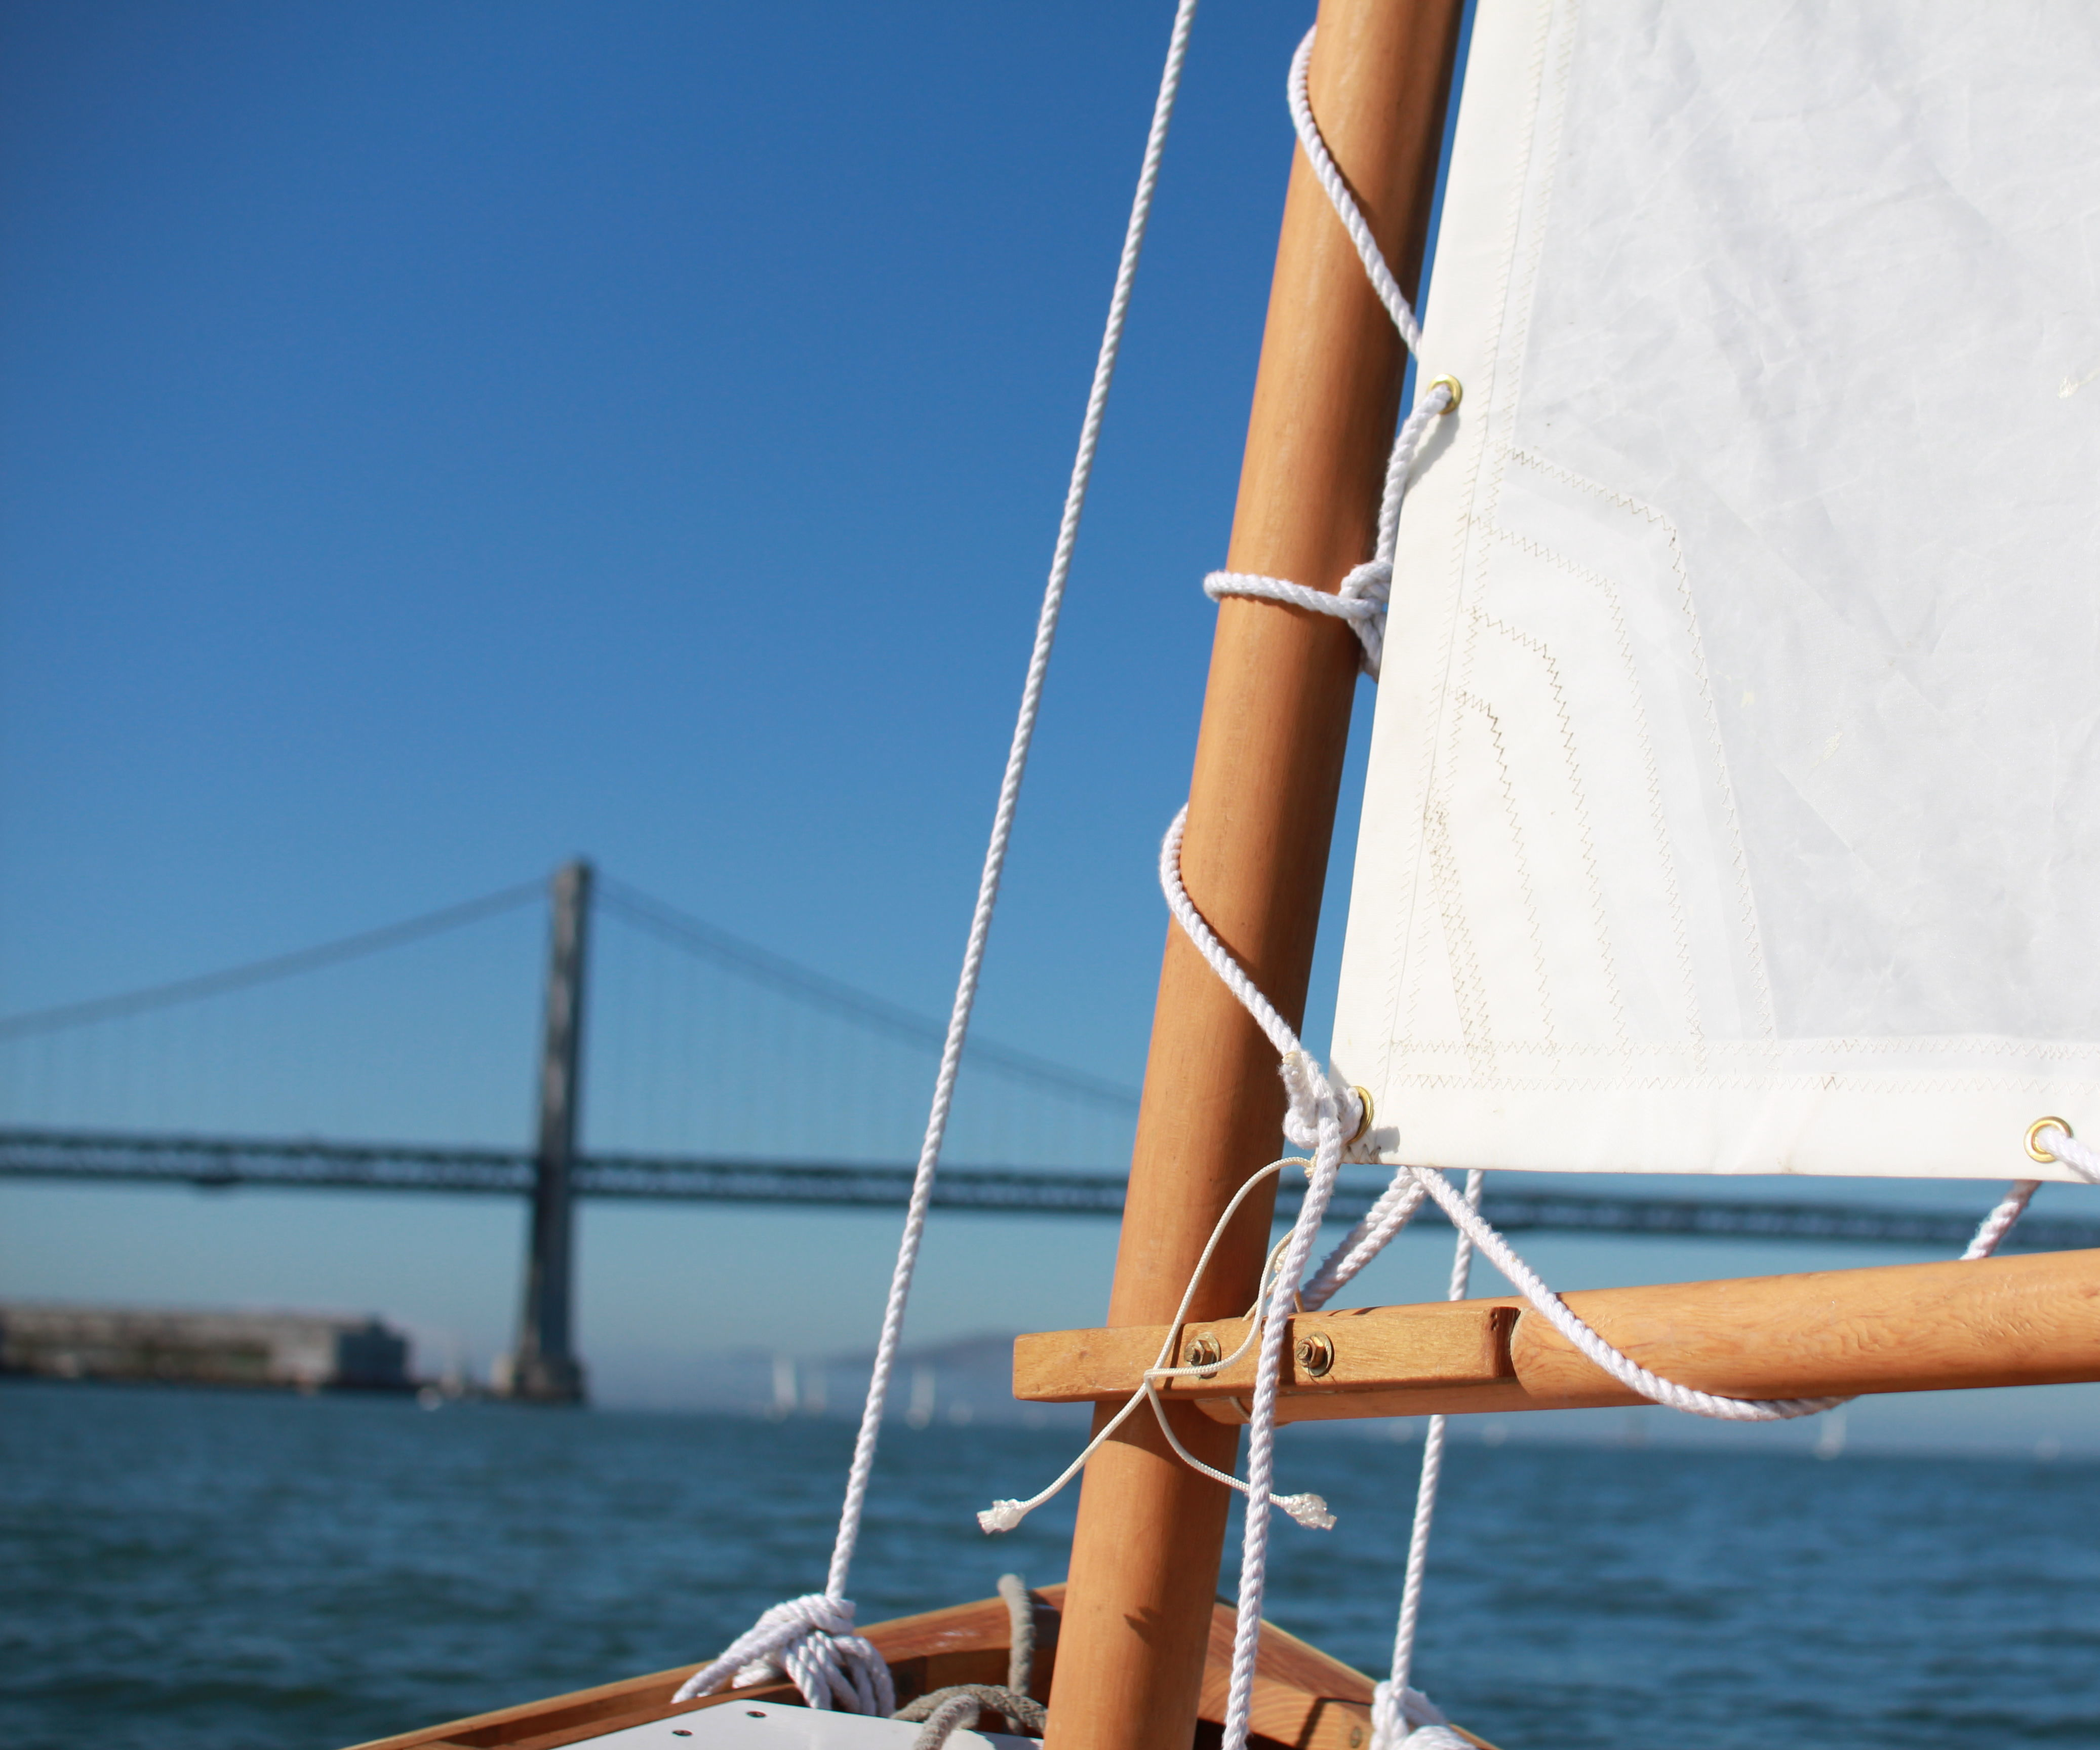 15' Wooden Mast for a Sailboat